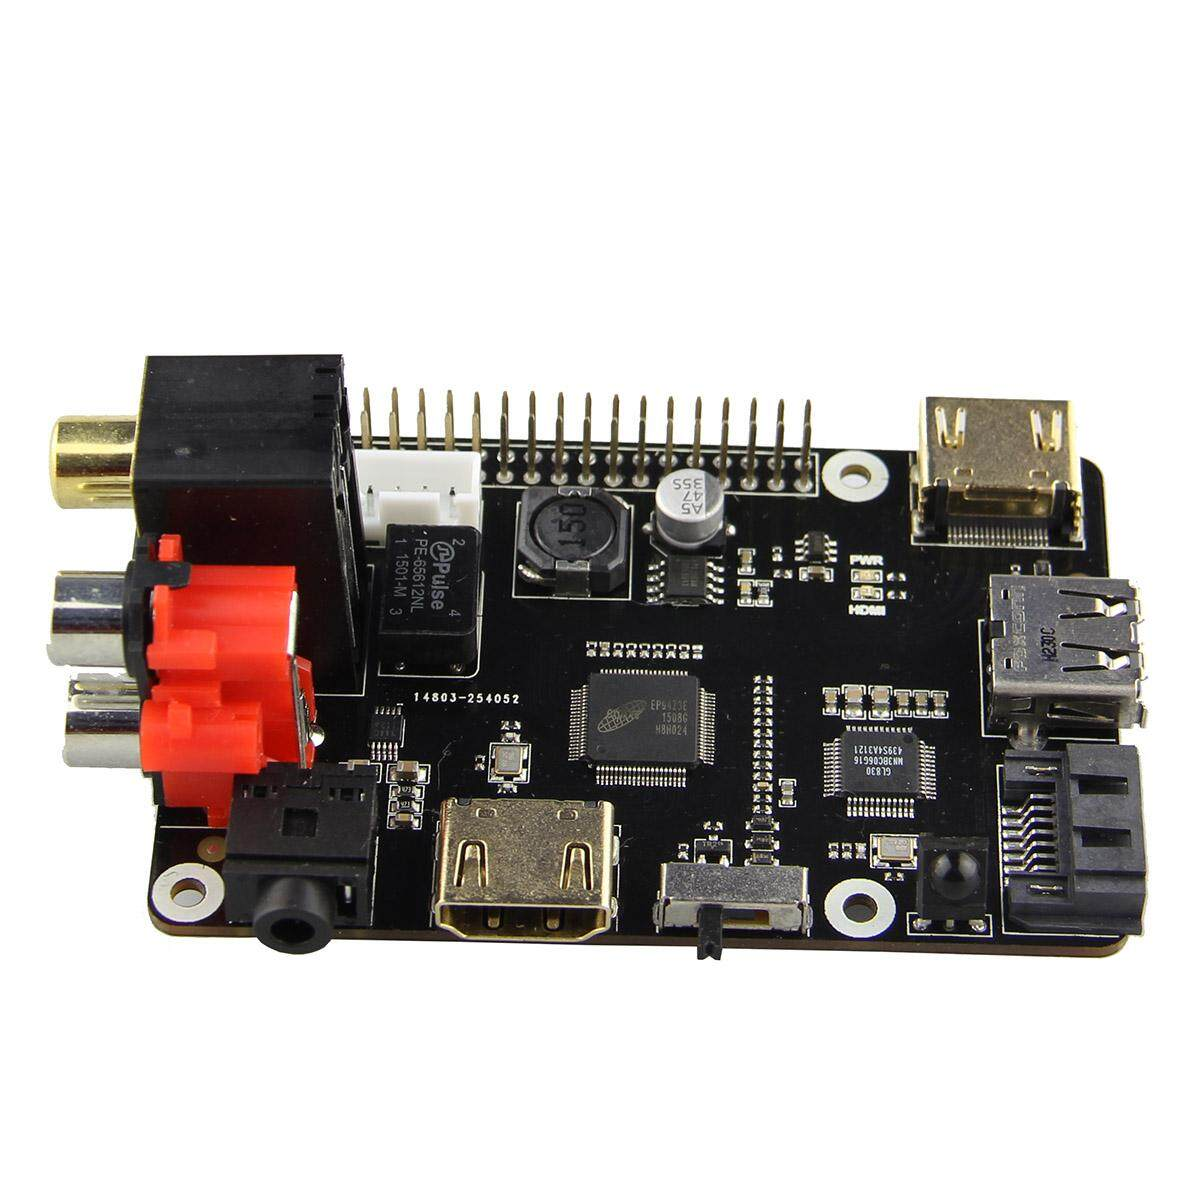 Supstronics X600 Expansion Board for Raspberry Pi 2 / B+ (Black) - intl